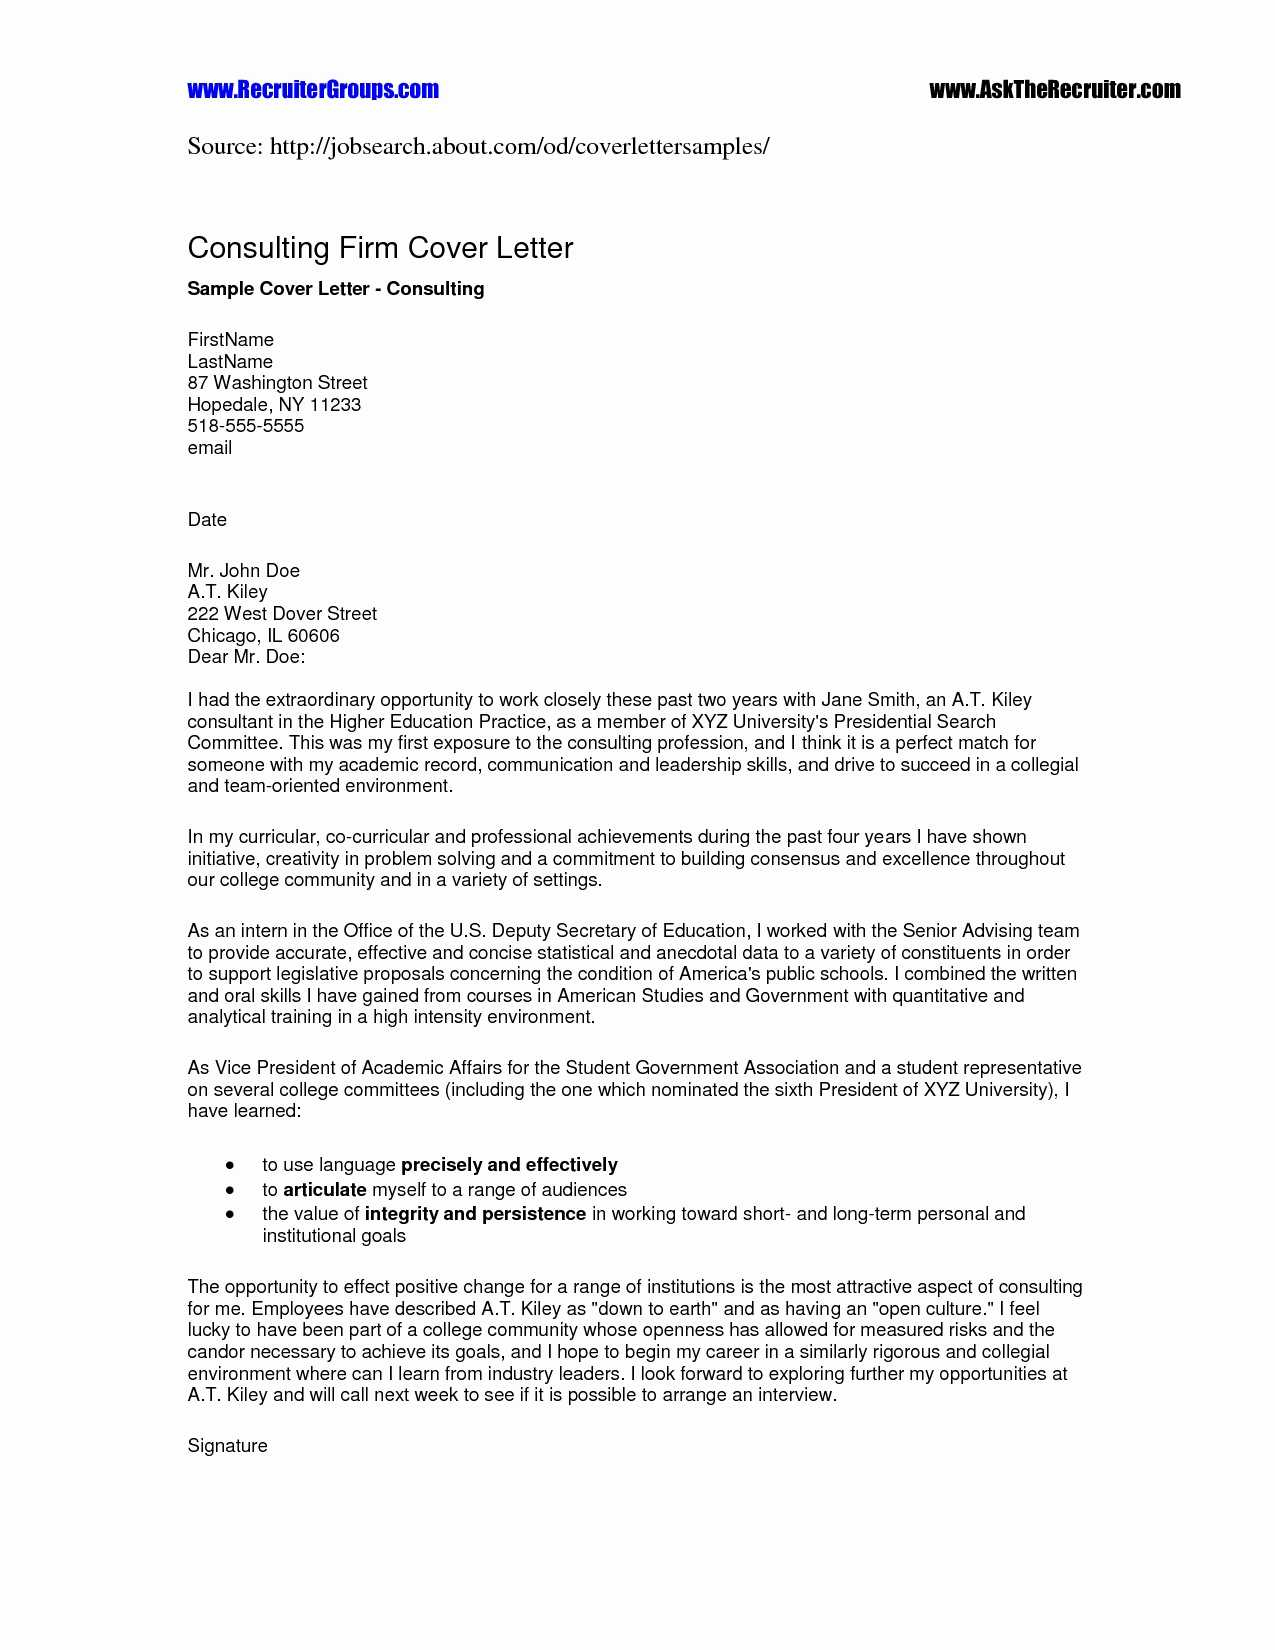 Gift Letter Template for Home Loan - Mortgage Loan Agreement Sample Elegant Mortgage Gift Letter Template